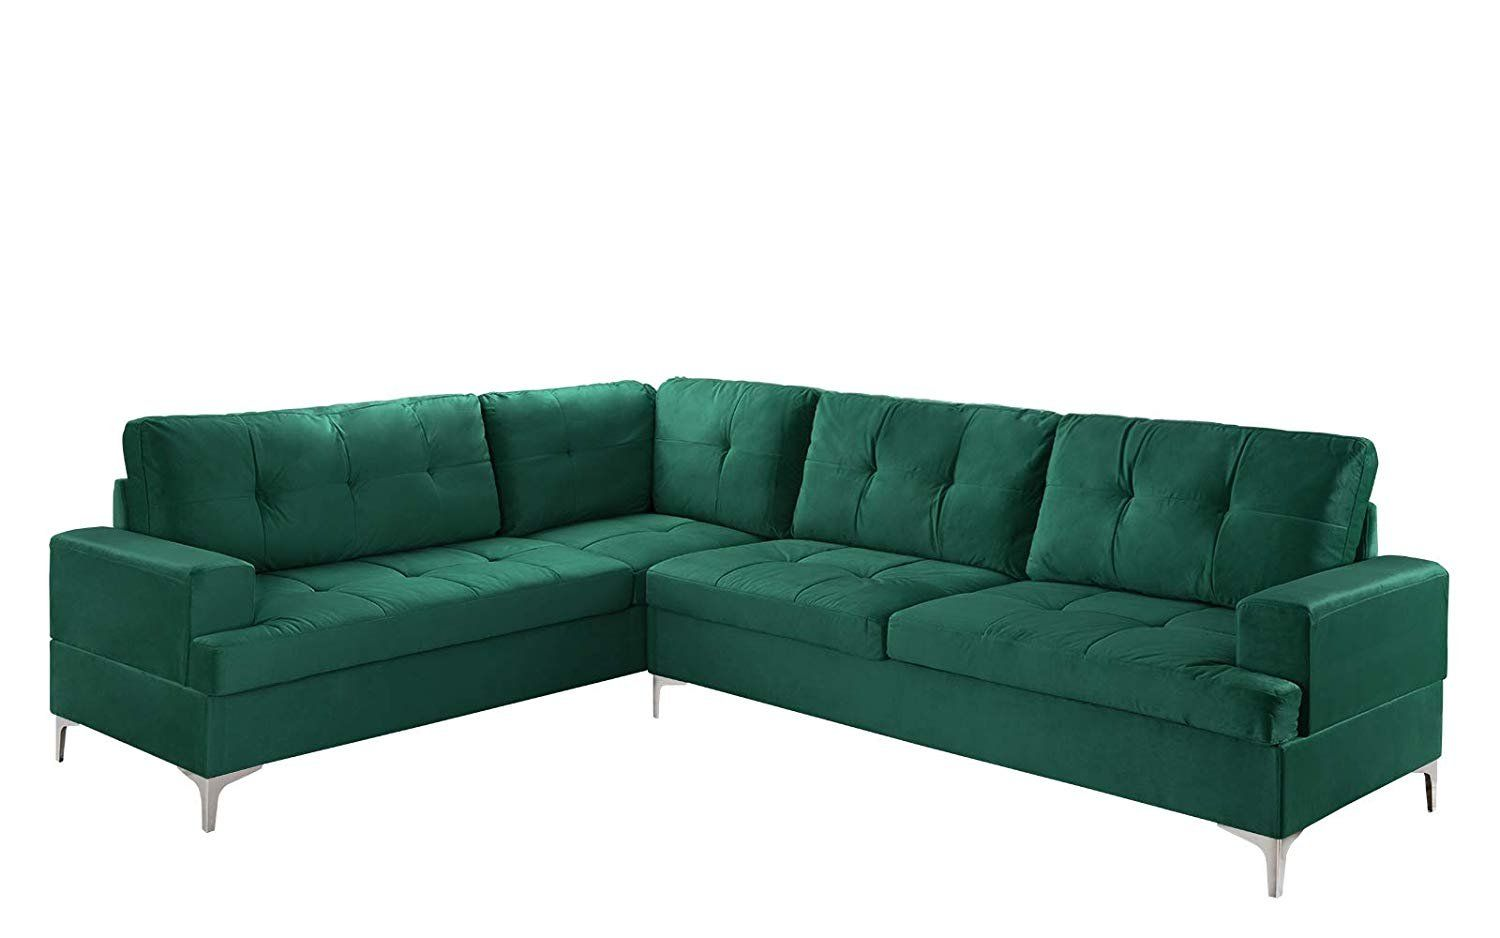 Home In 2020 L Shaped Couch Sectional Sofa Living Room Sofa